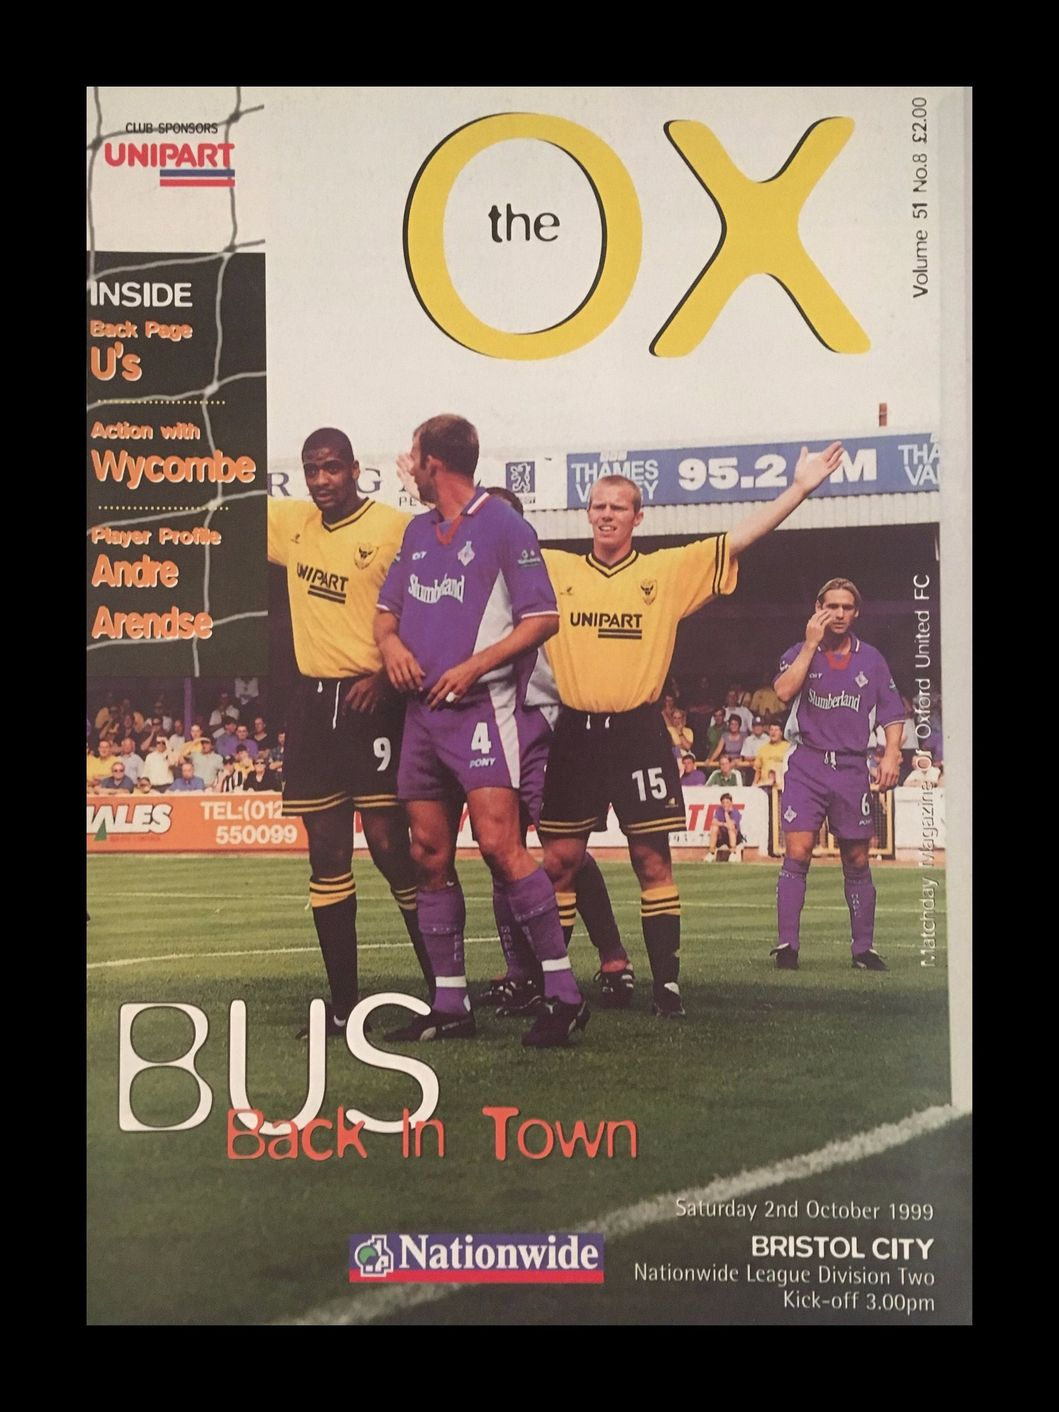 Oxford United v Bristol City 02-10-1999 Programme